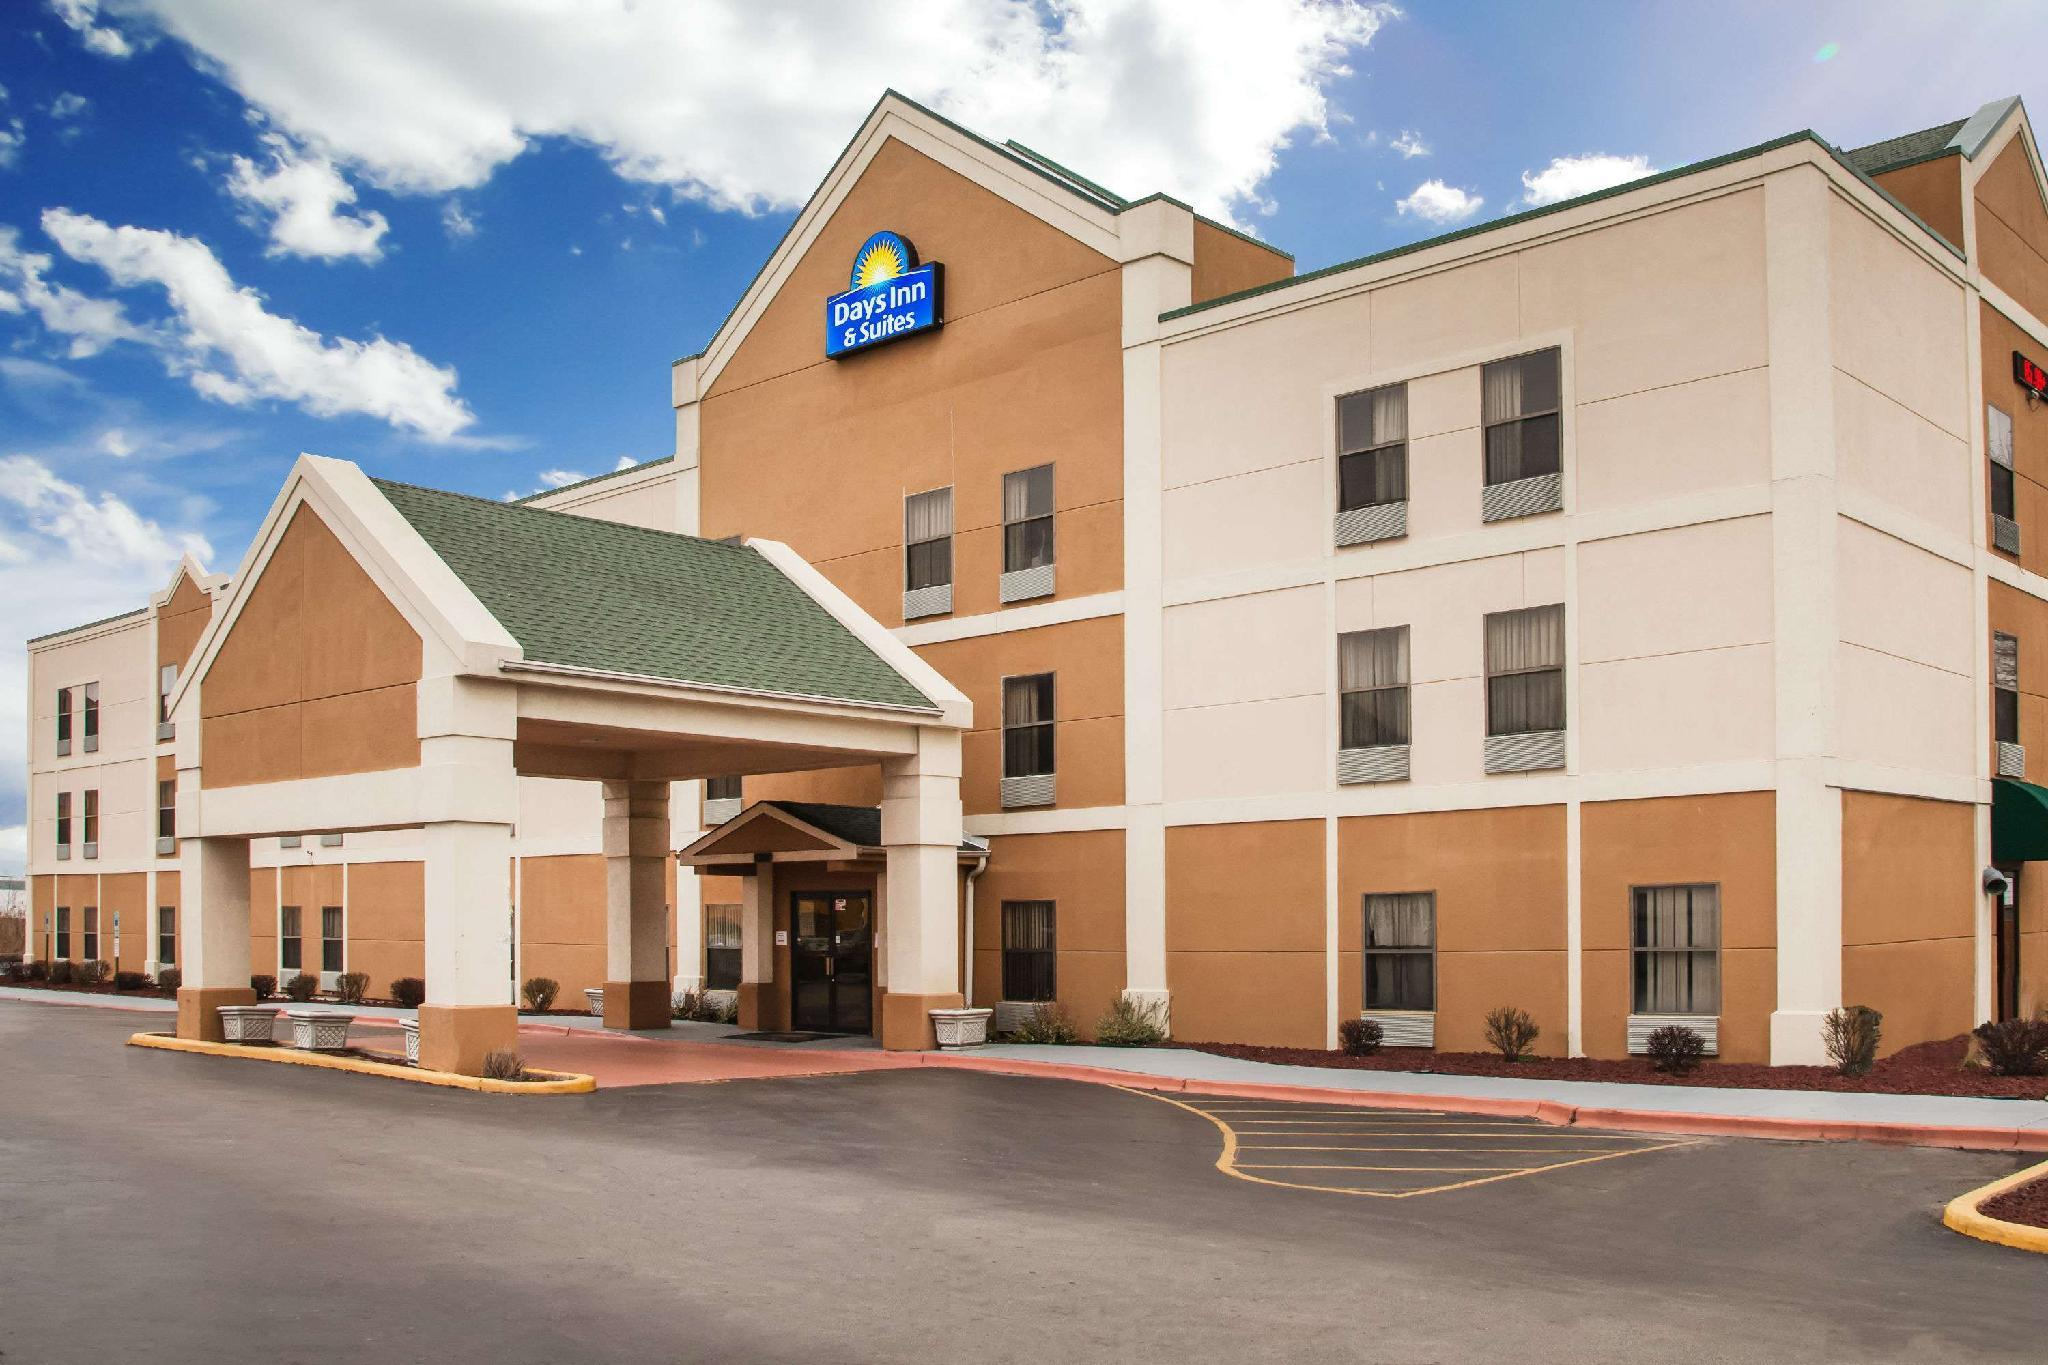 Days Inn And Suites By Wyndham Harvey   Chicago Southland